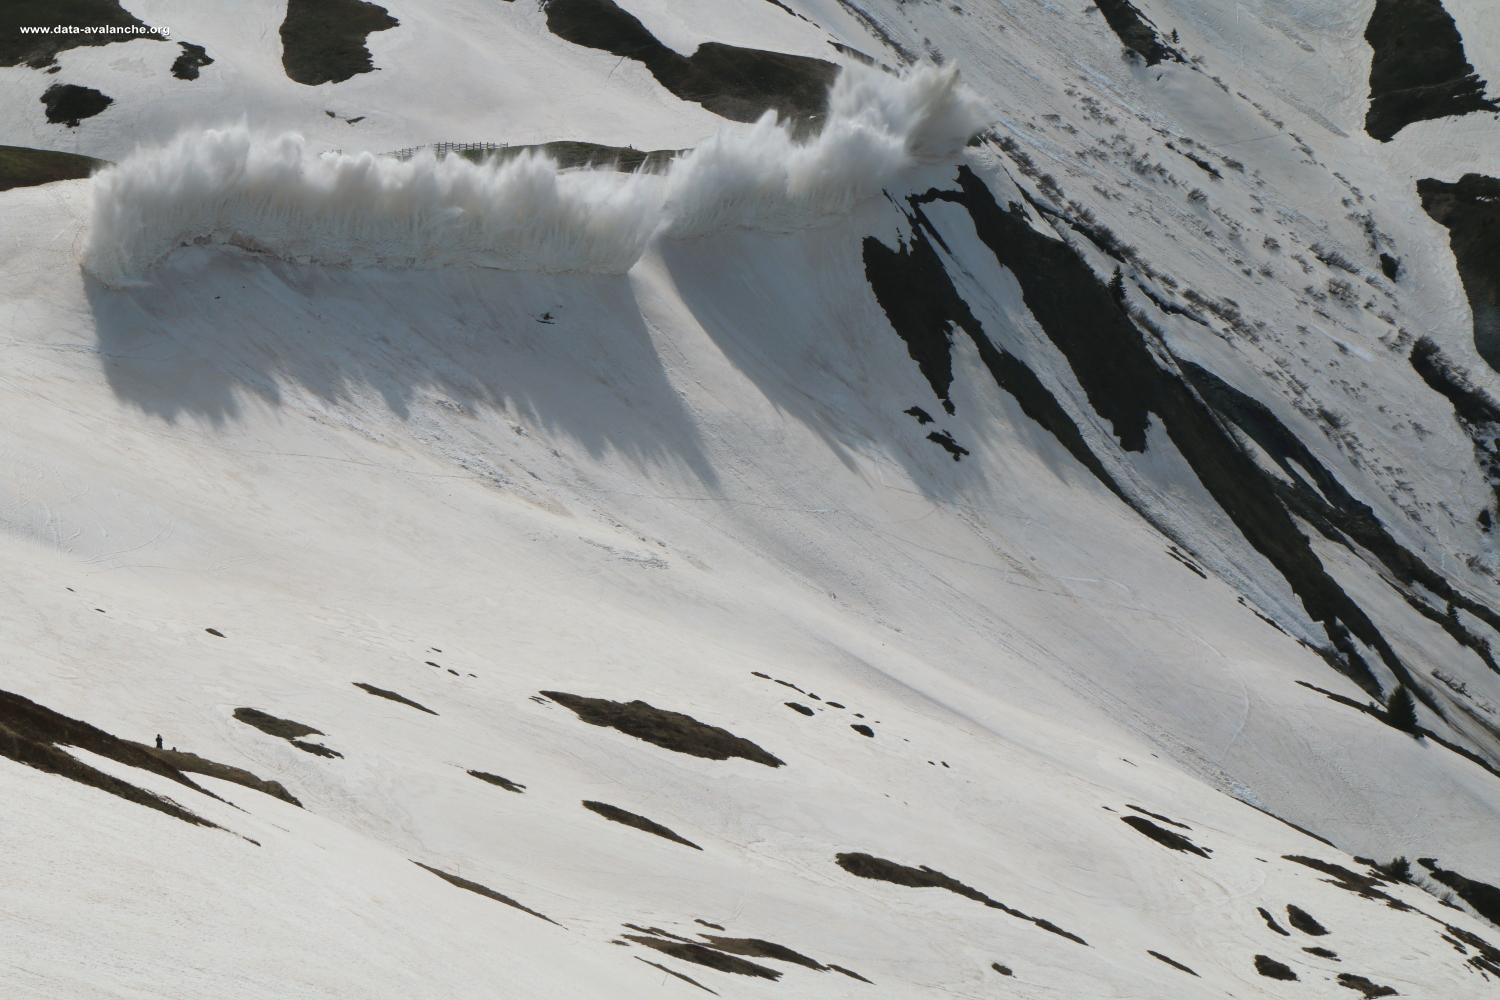 Avalanche Maurienne, secteur Ouillon, RD 927 Col du Glandon - Photo 1